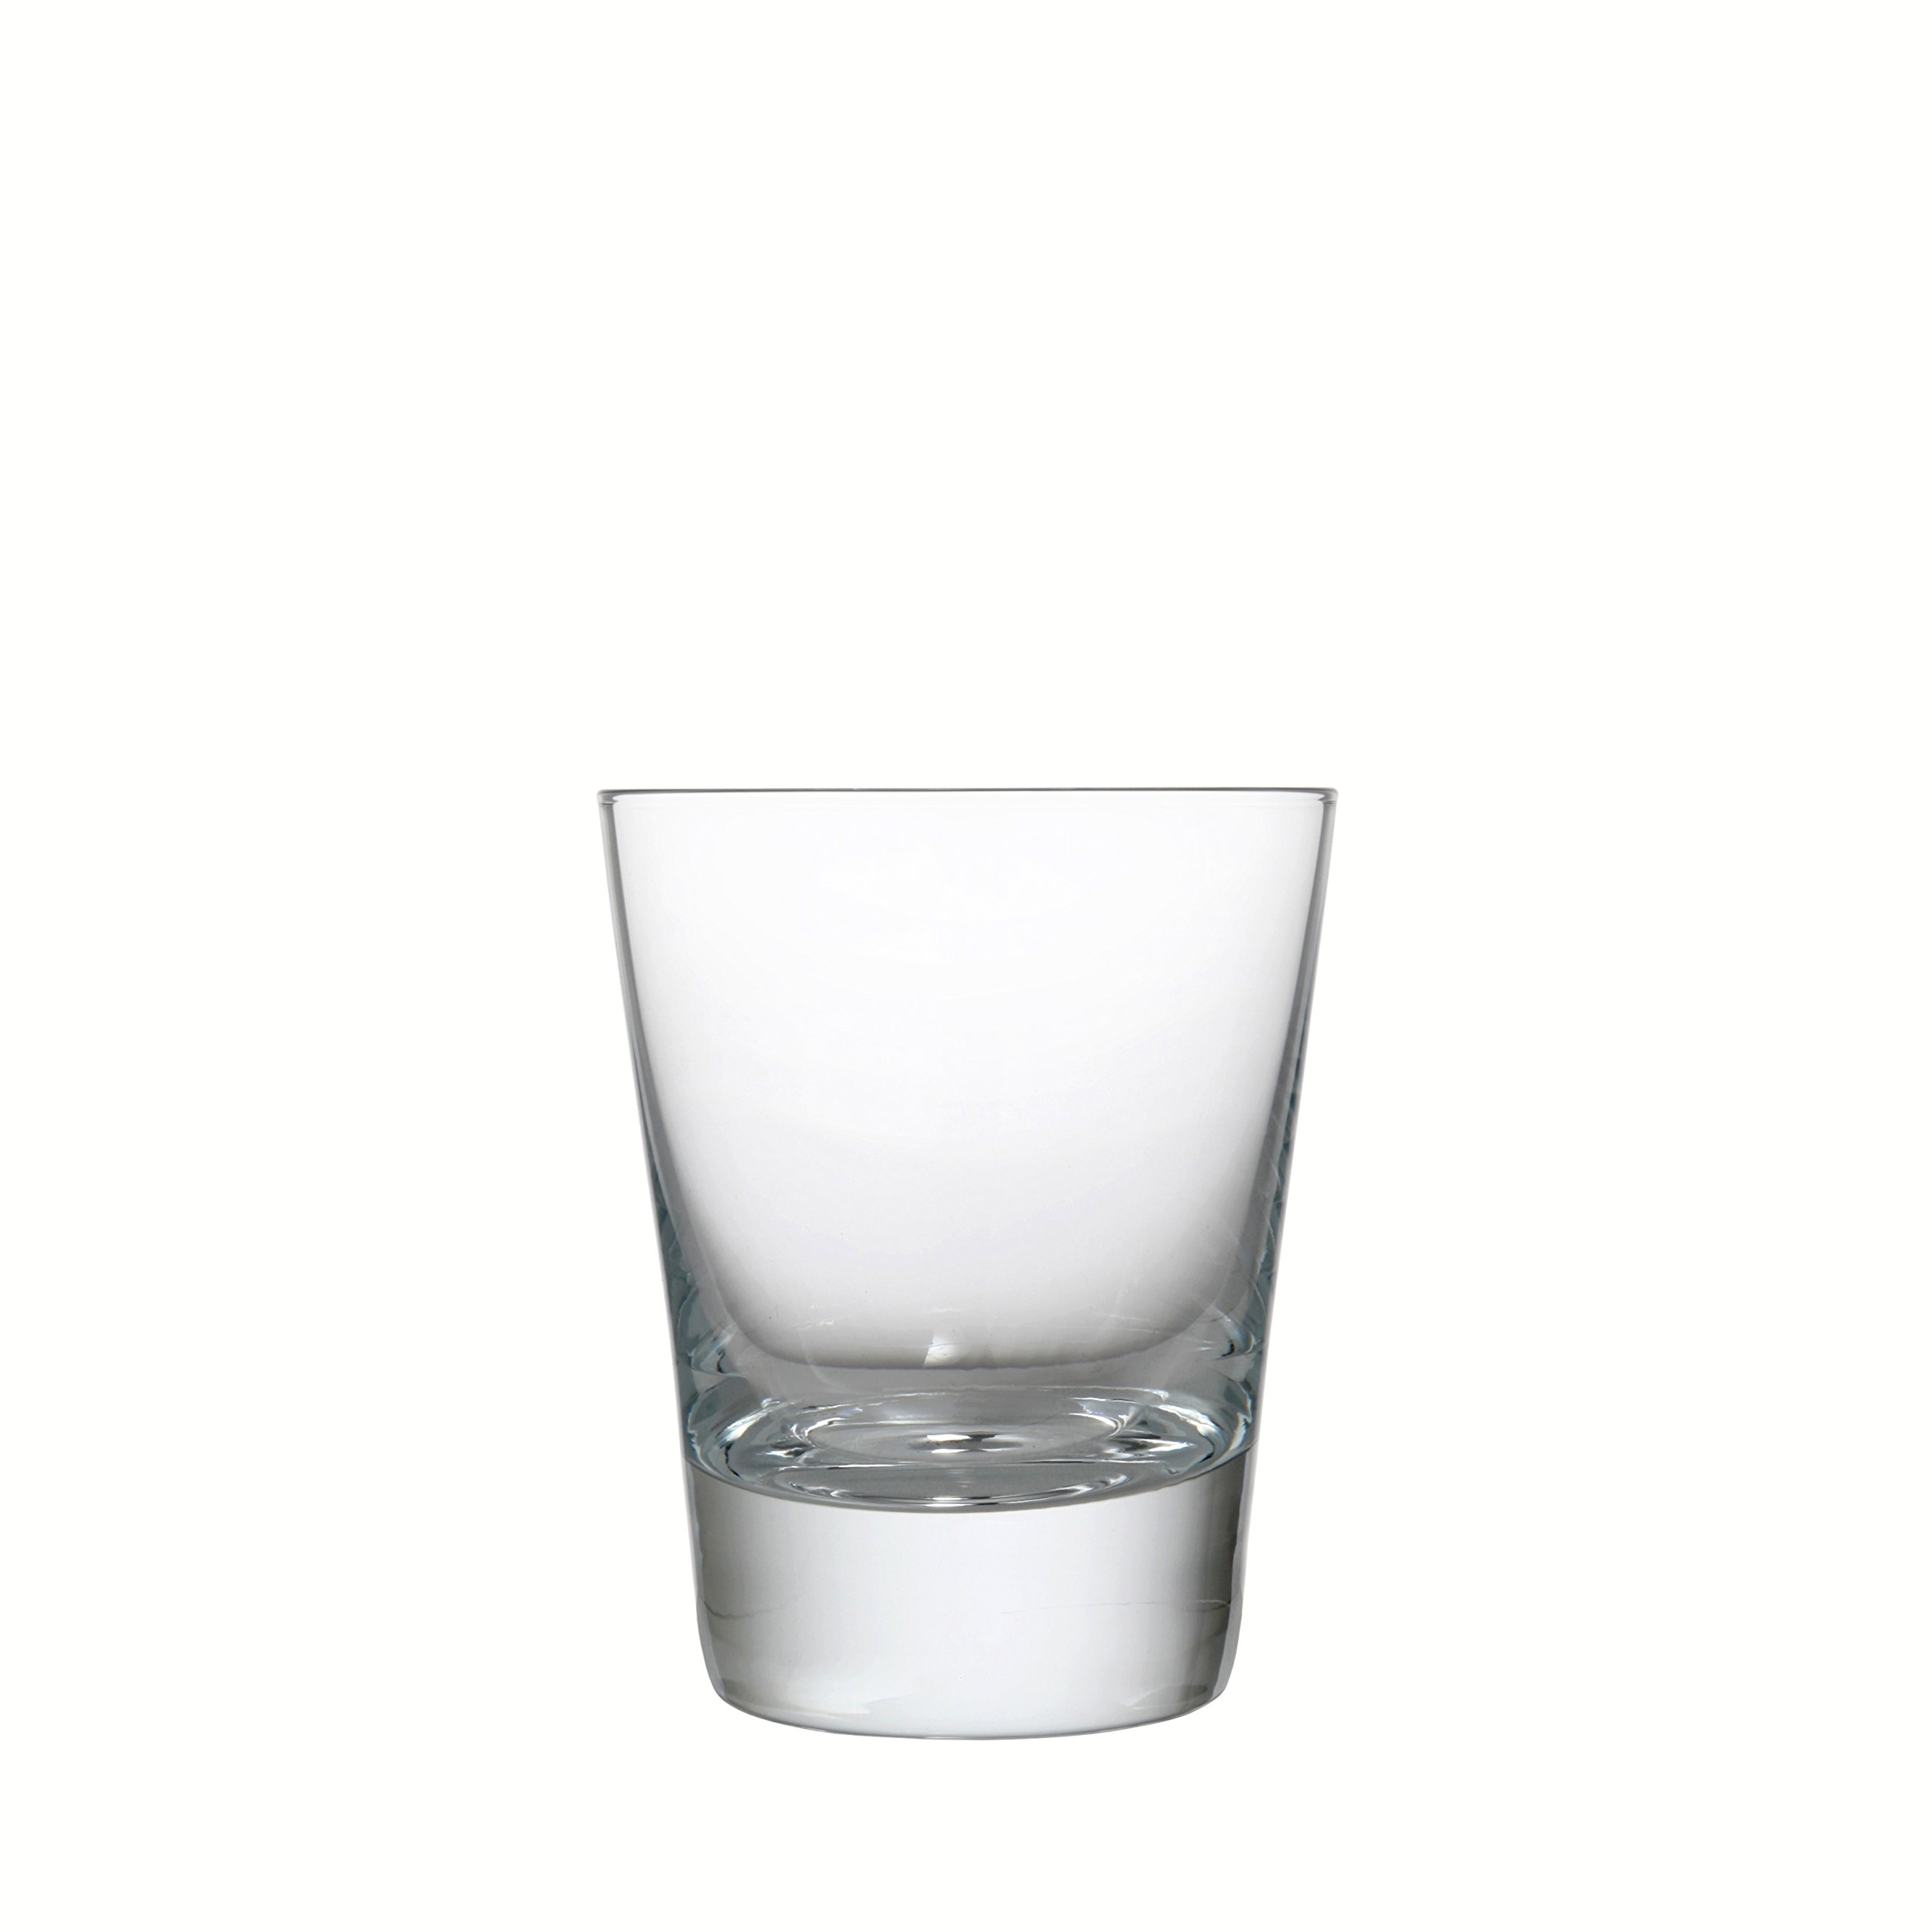 Schott Zwiesel Tritan Crystal Glass Tossa Barware Collection Old Fashioned/Whiskey, Cocktail Glass, 9.6-Ounce, Set of 6